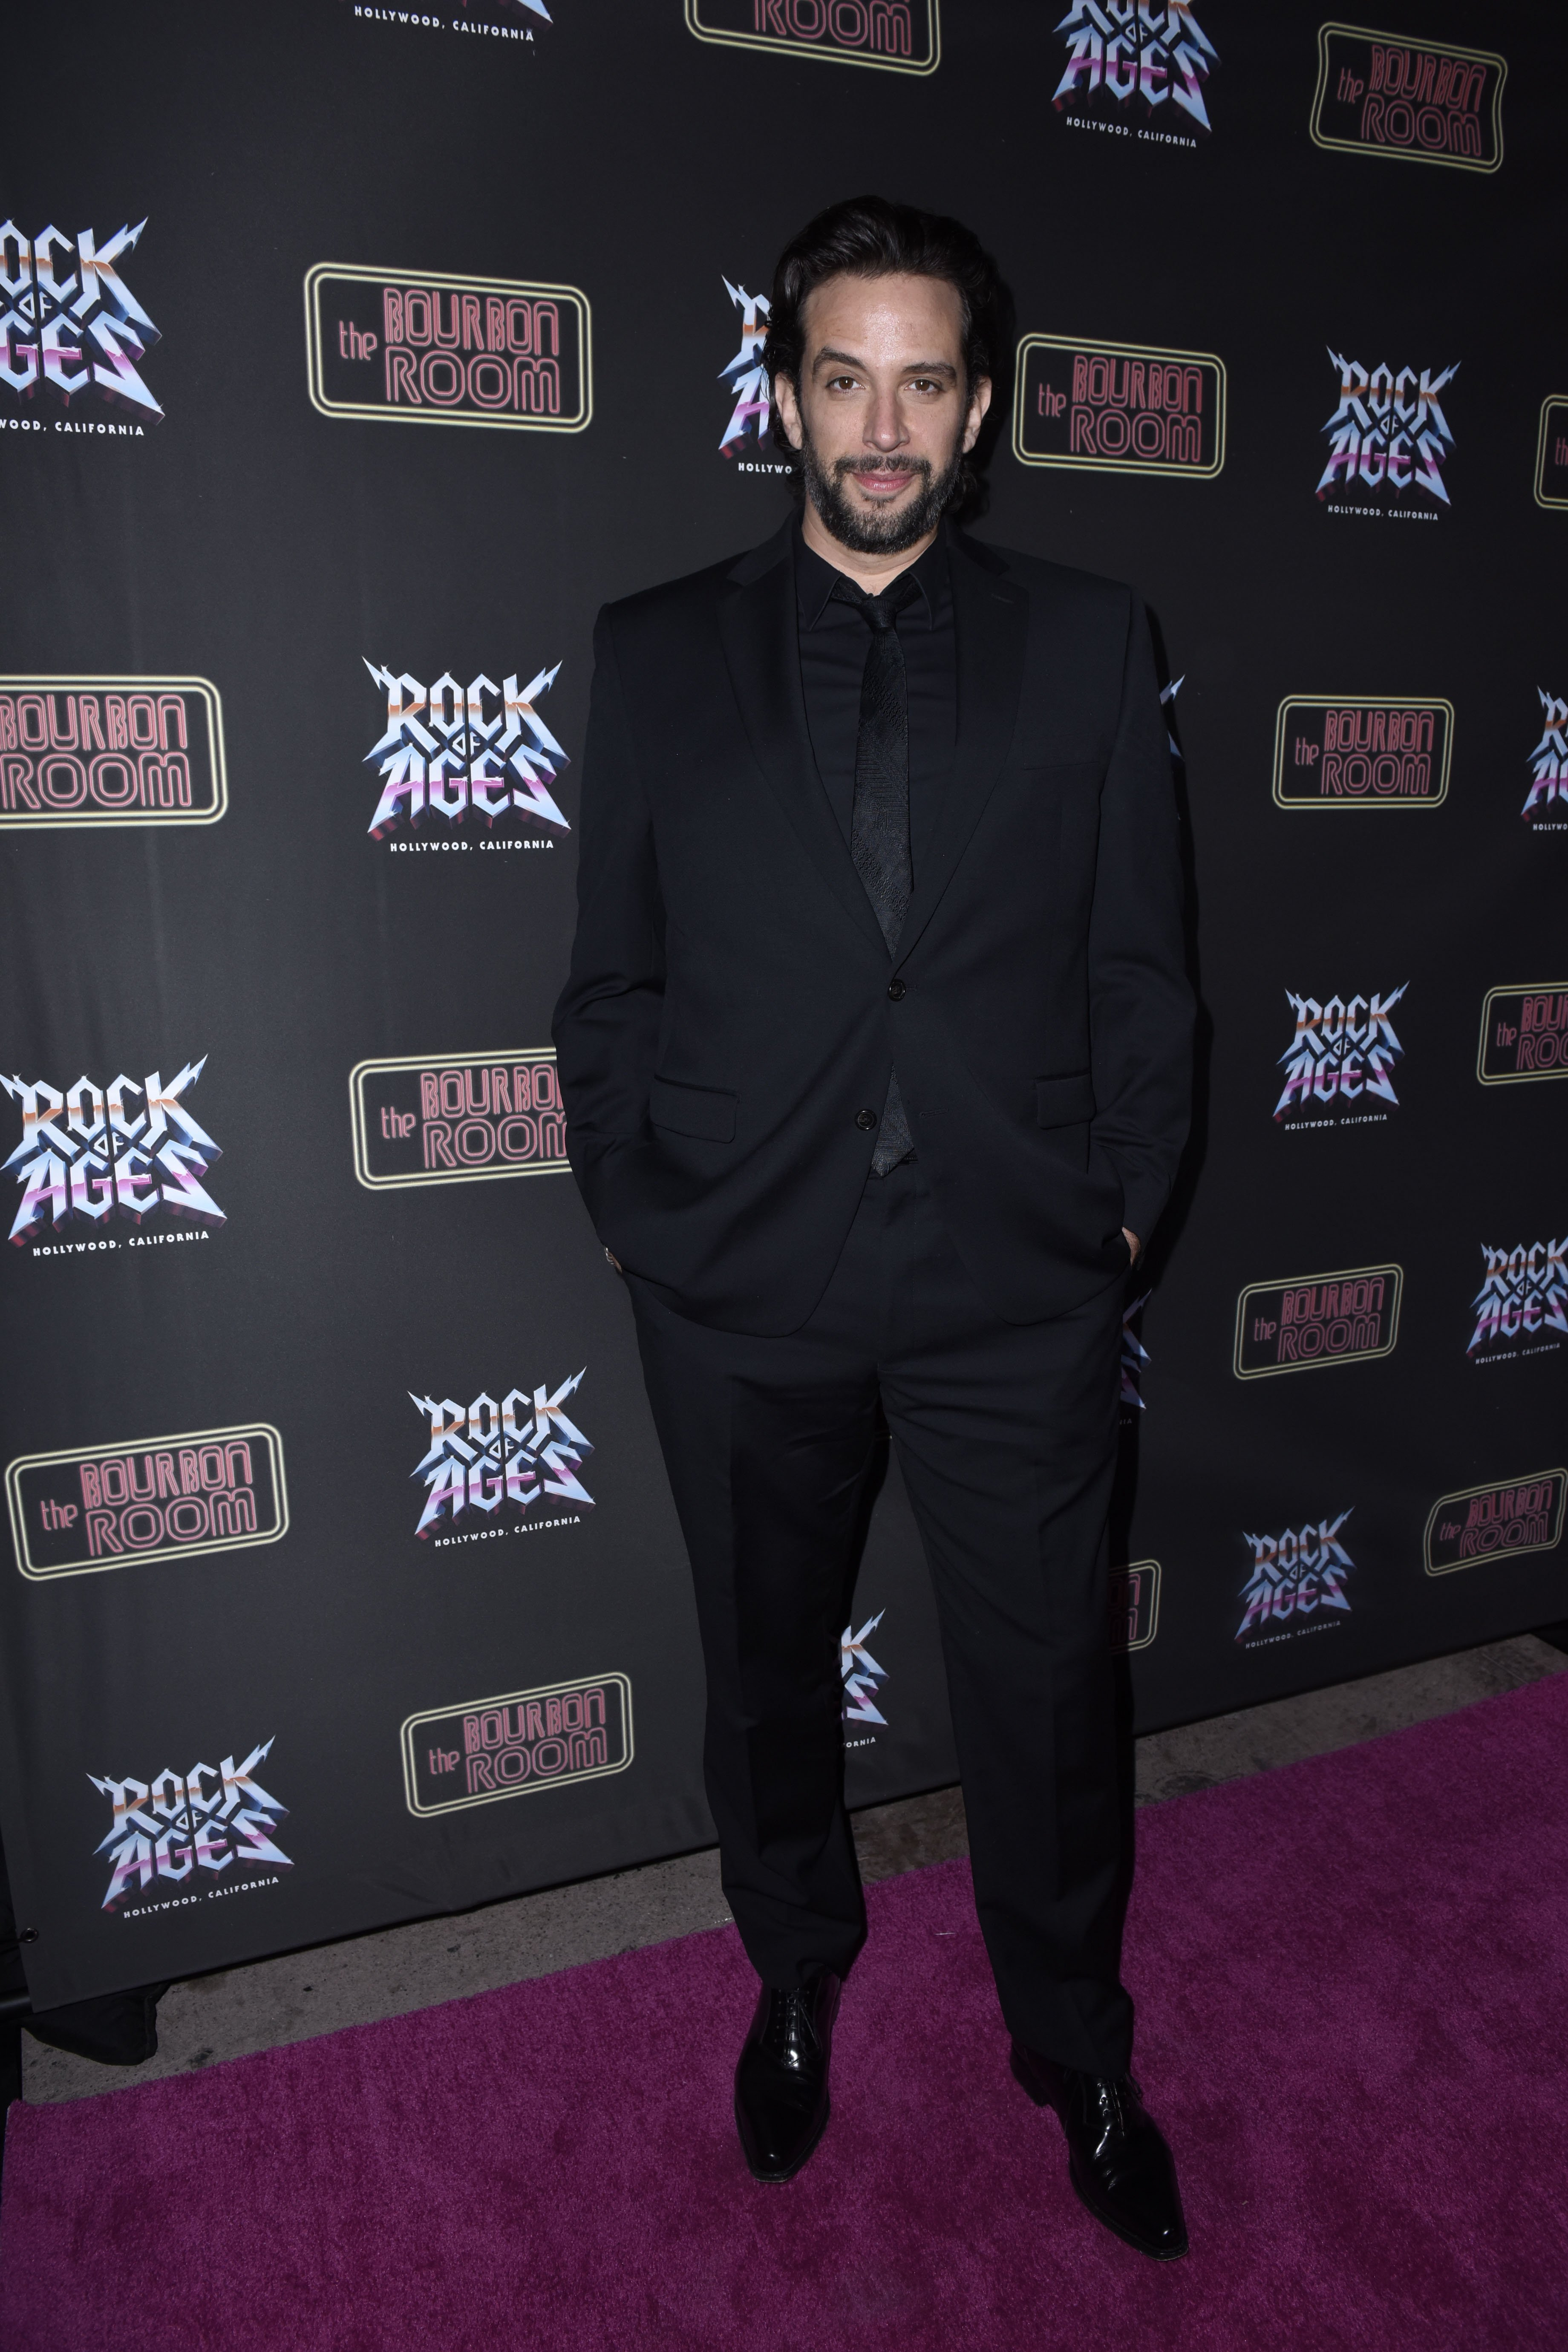 Nick Cordero attends Opening Night Of Rock Of Ages Hollywood on January 15, 2020, in Hollywood, California. | Source: Getty Images.